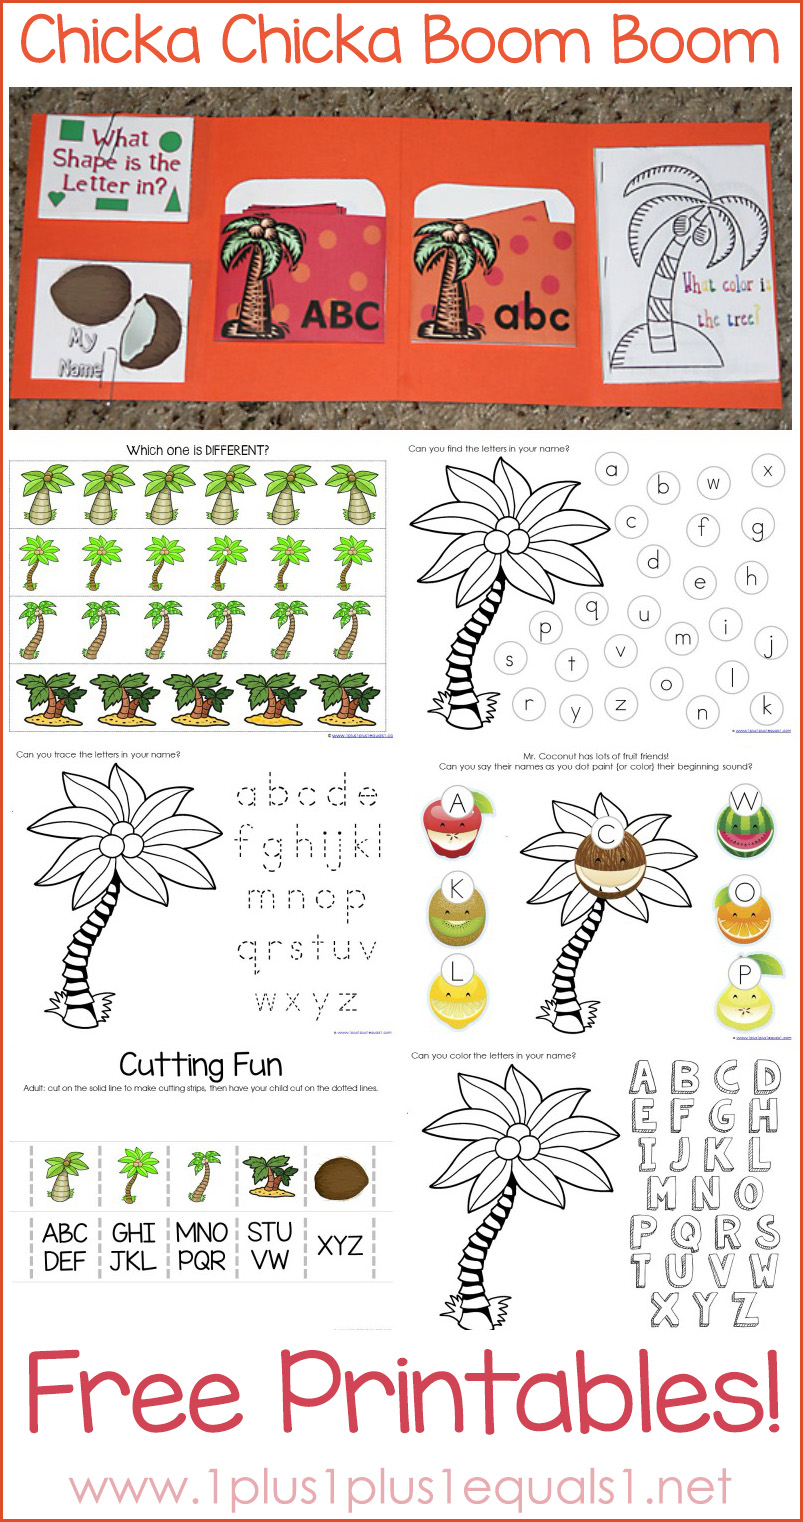 math worksheet : chicka chicka boom boom theme printables : Chicka Chicka Boom Boom Worksheets For Kindergarten